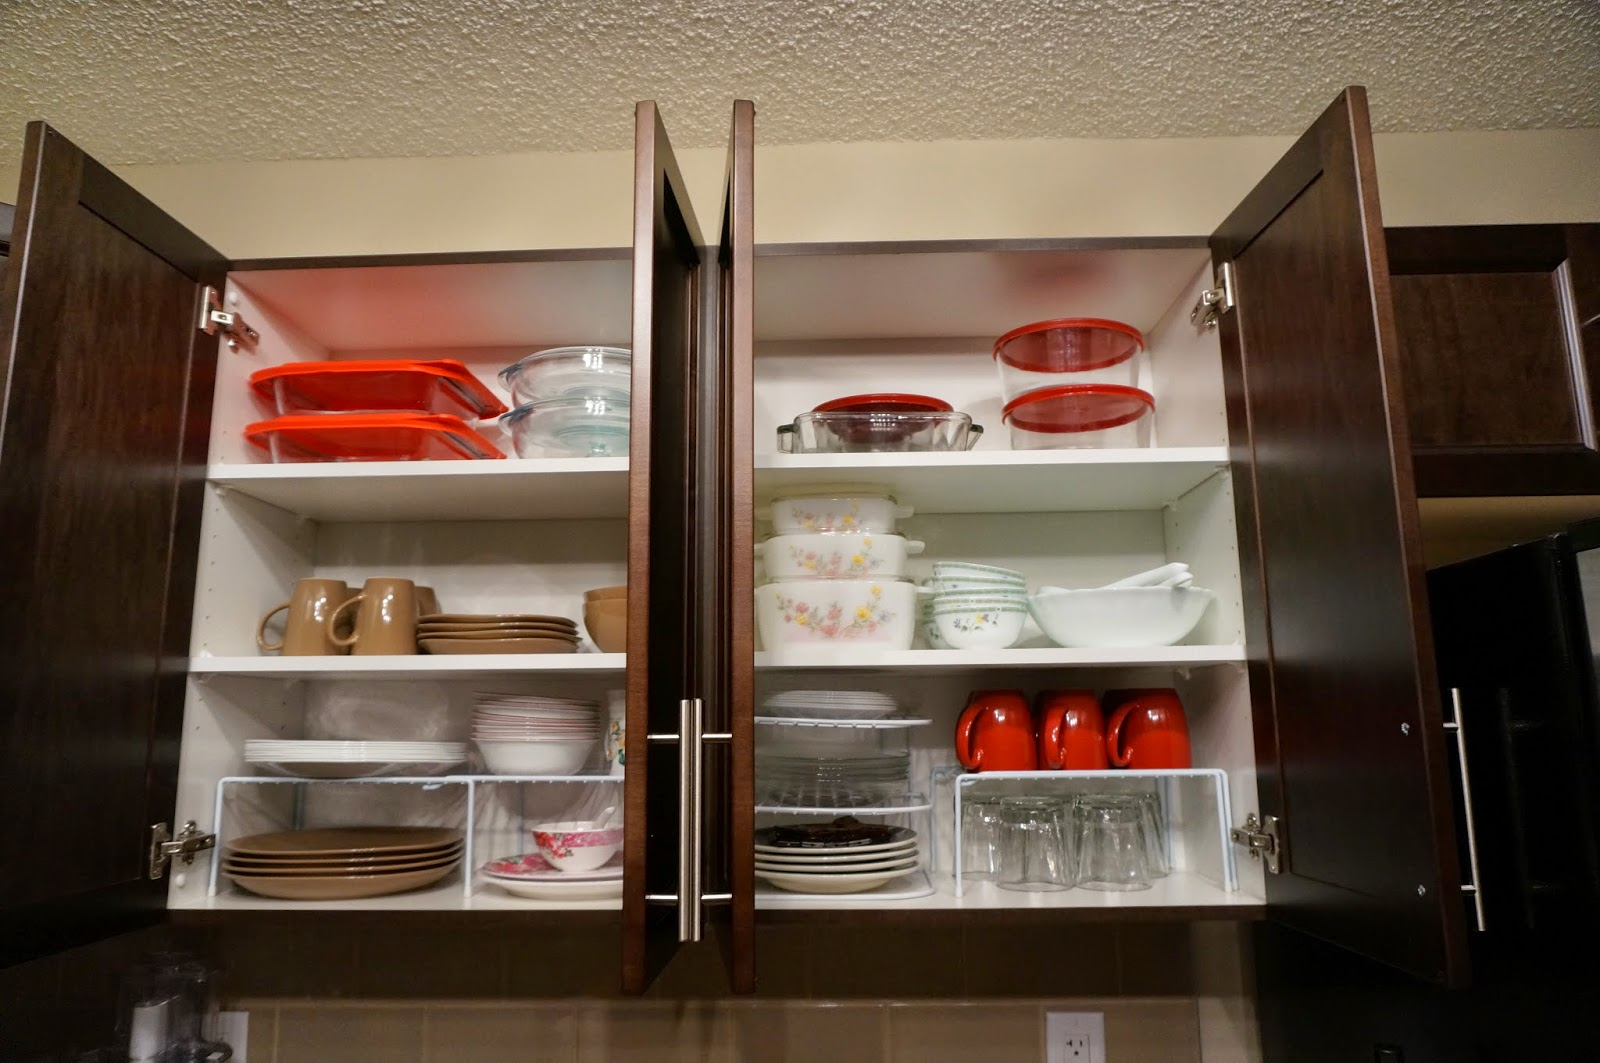 How To Organize Kitchen Cabinet Shelves